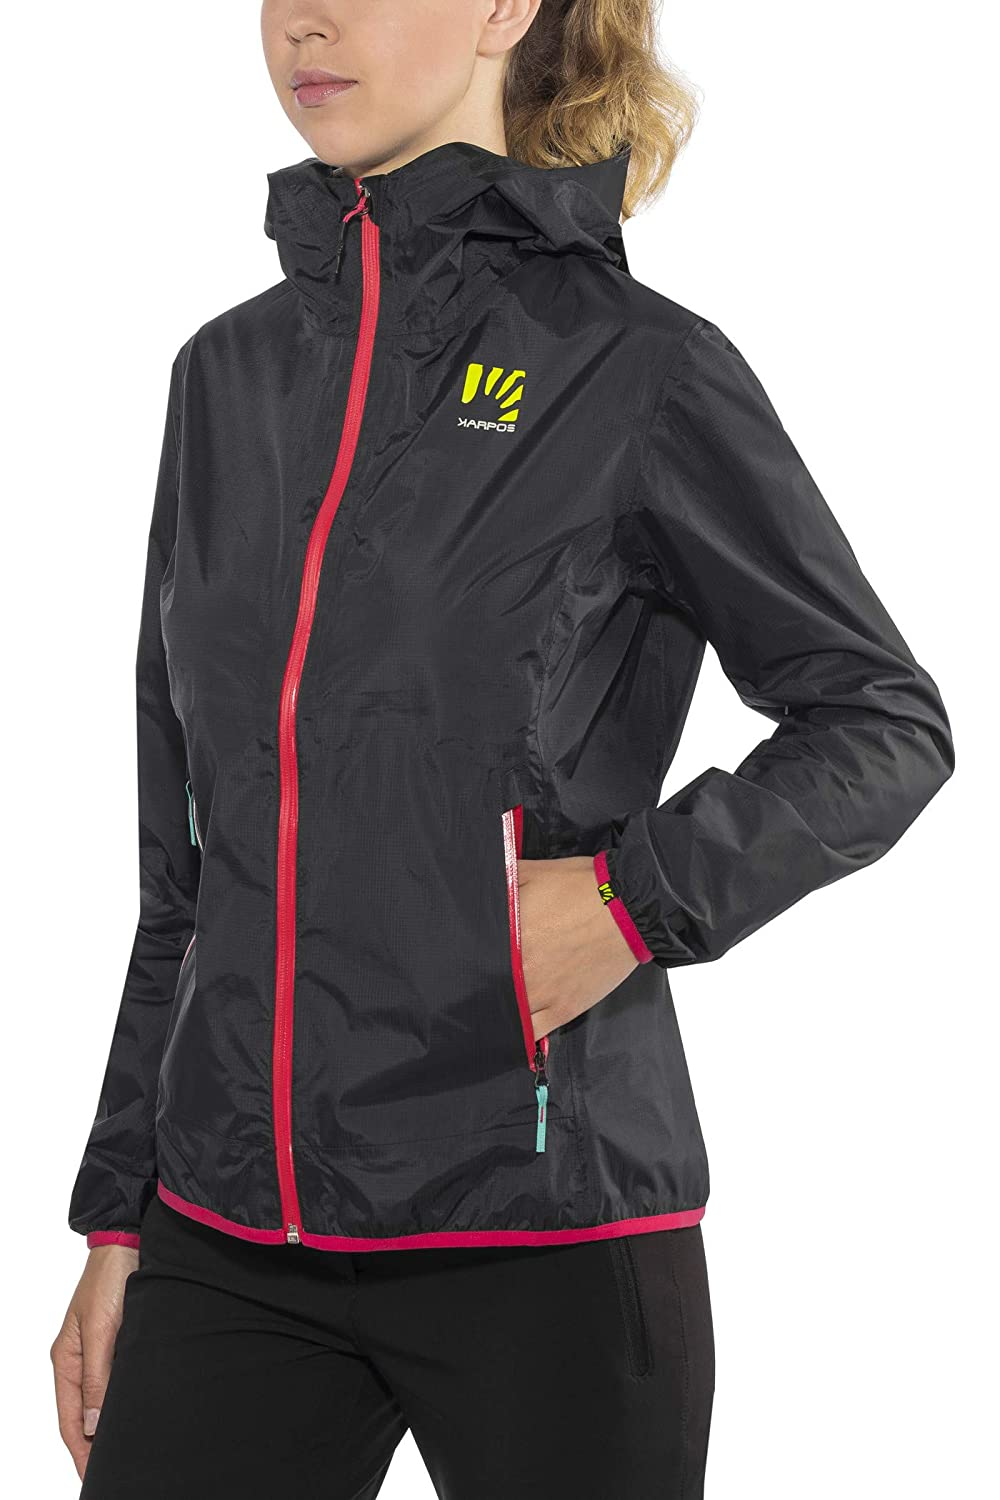 Karpos CIMA Jacket Women - Dark Grey